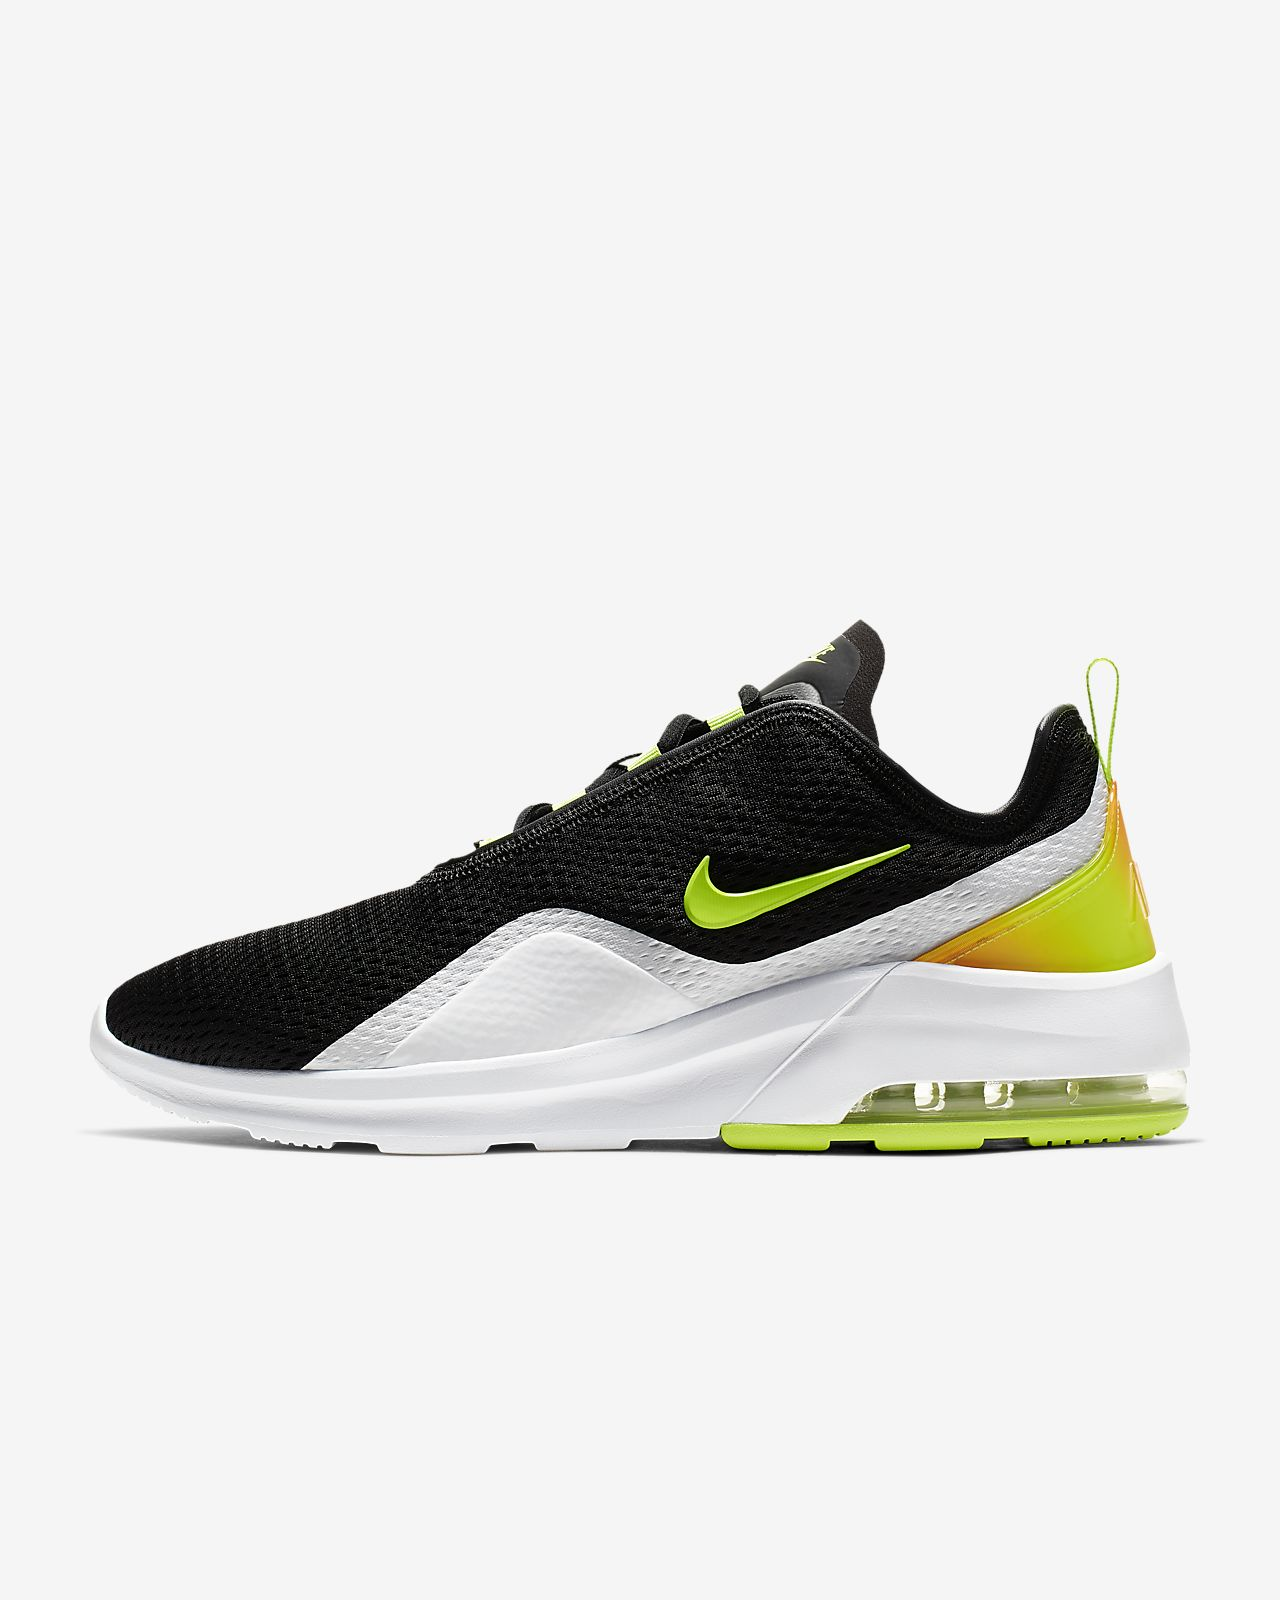 best service d9de9 6afd0 ... Nike Air Max Motion 2 Men s Shoe